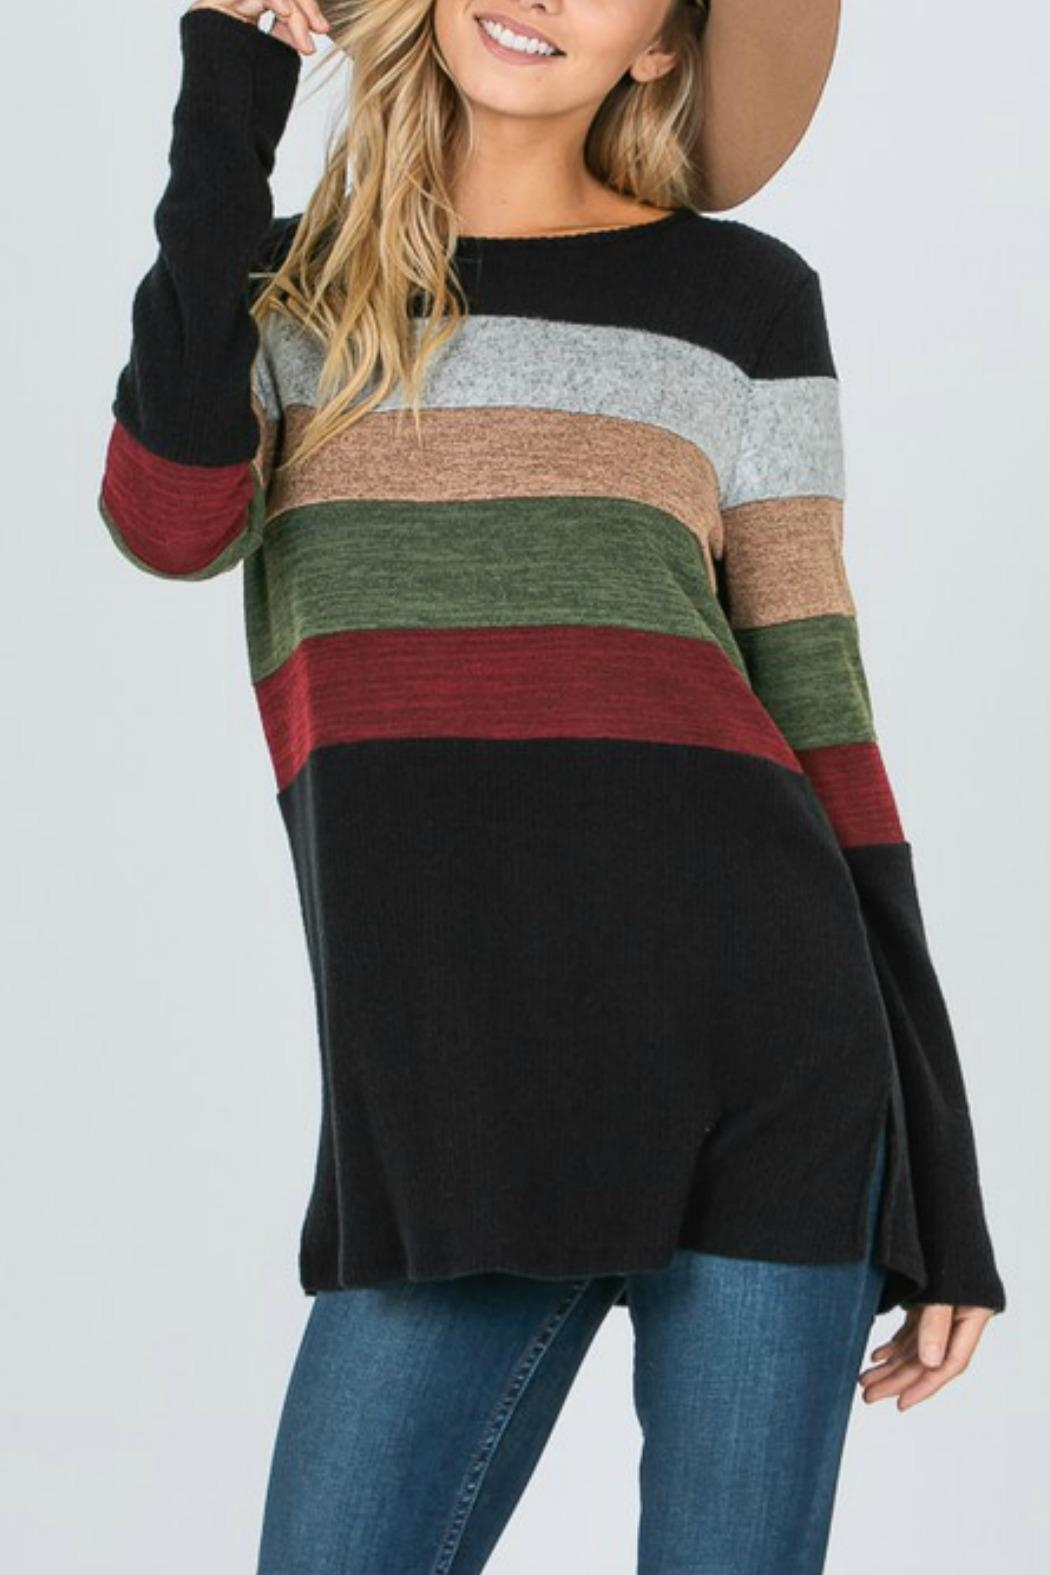 Hailey & Co Striped Top - Main Image